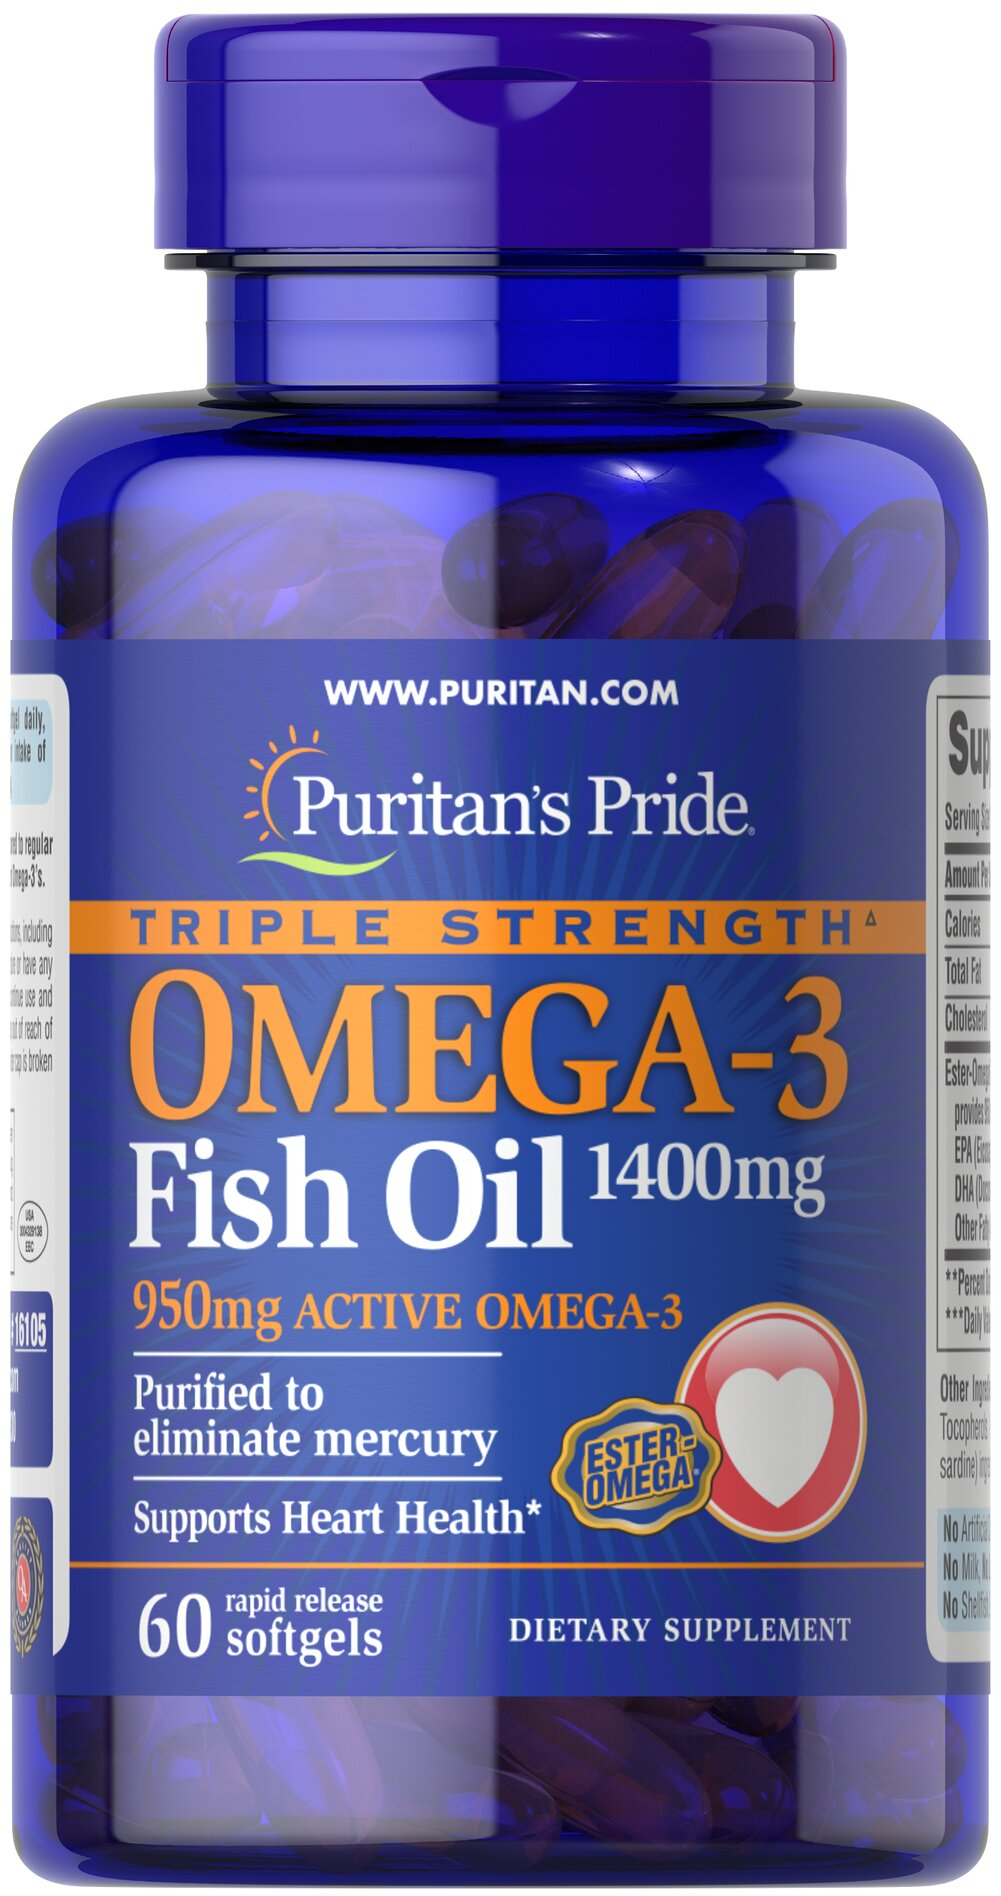 Triple Strength Omega-3 Fish Oil 1360 mg <p><strong>Purified to Eliminate Mercury</strong></p><p>Contains 950 mg of active Omega-3 per softgel — our highest potency! </p> 60 Softgels 1360 mg $19.99